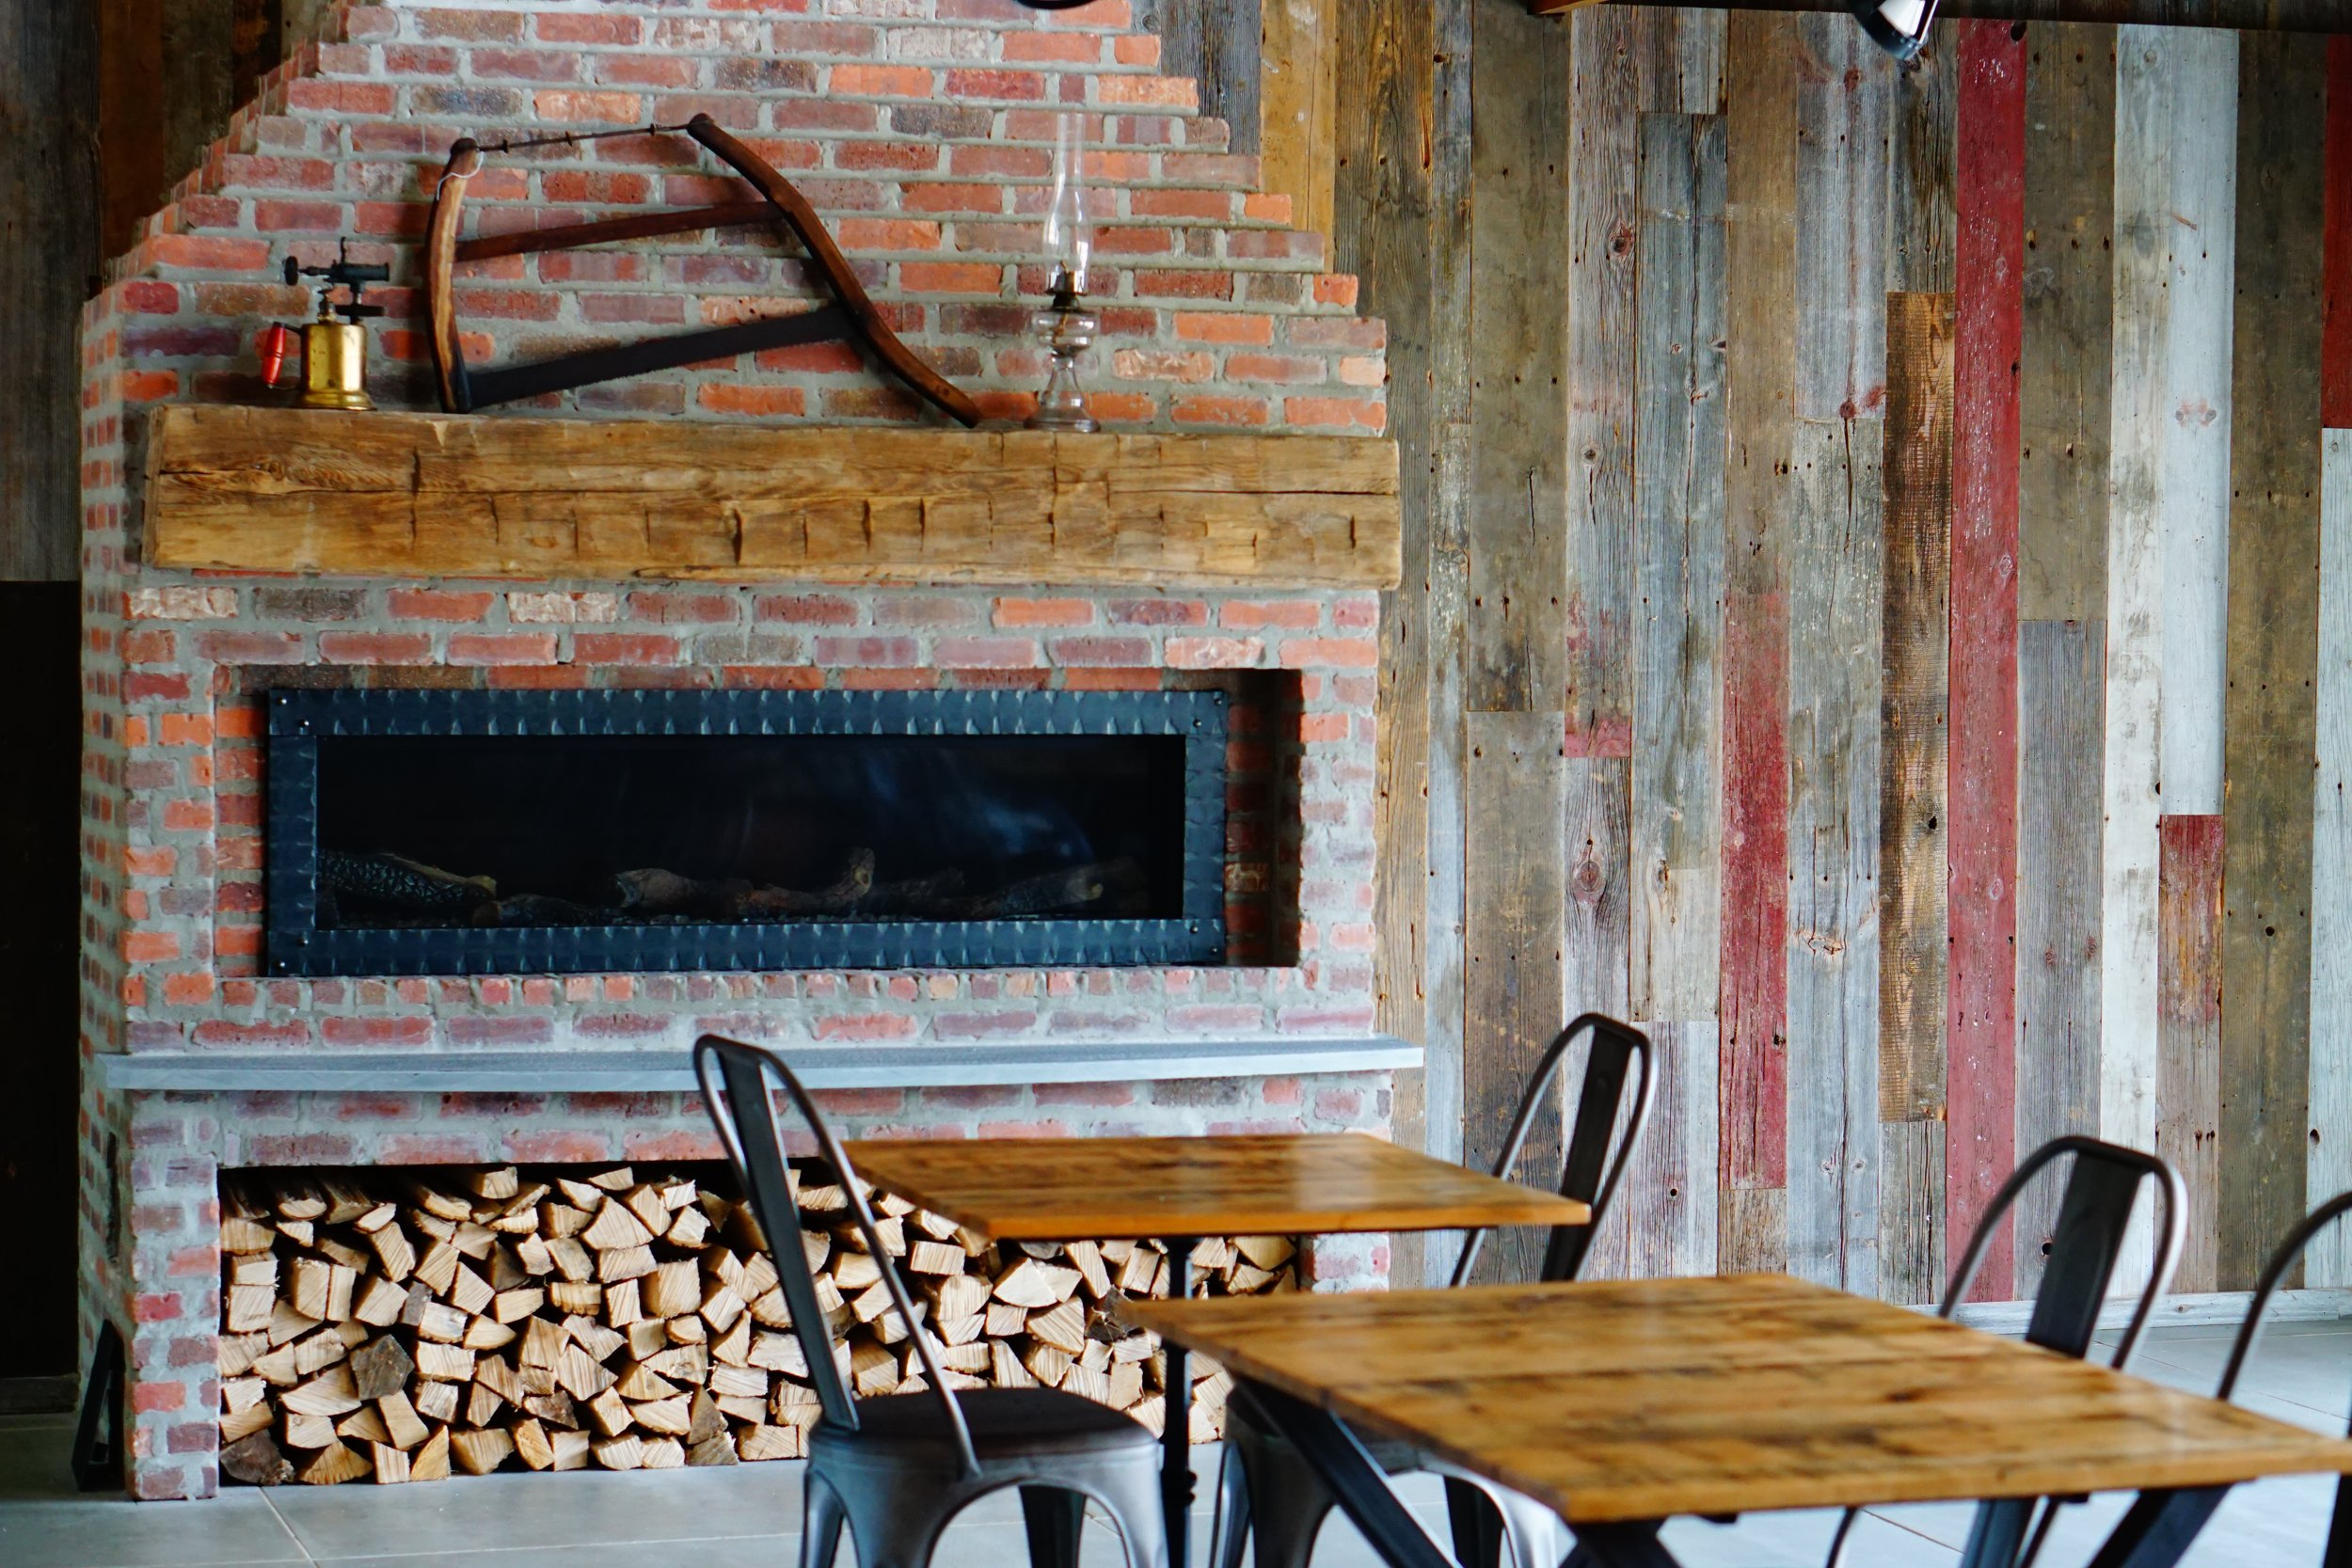 Wood Stack Mantel Tables Siding.jpg